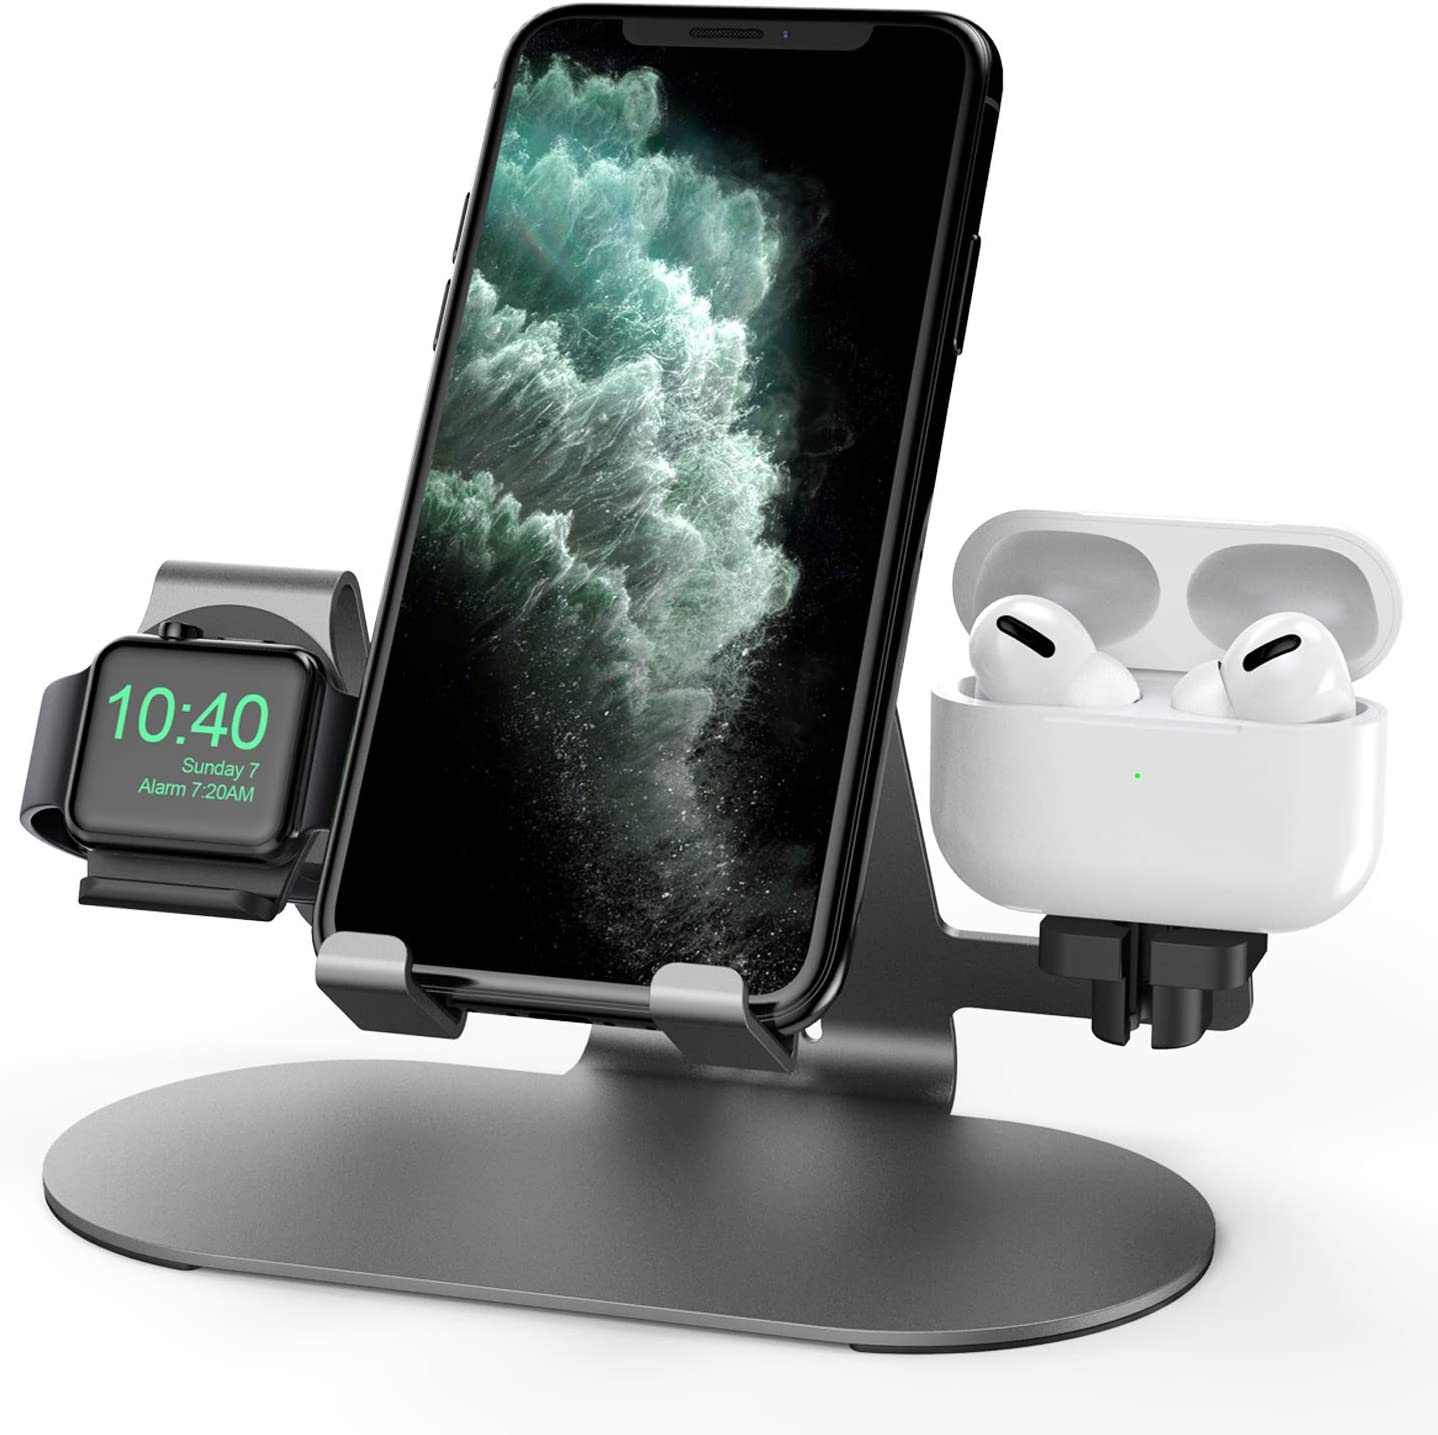 3 in 1 Aluminum Charging Station for Apple Watch Charger Stand Dock for iWatch Series 4/3/2/1,iPad,AirPods and iPhone Xs/X Max/XR/X/8/8Plus/7/7 Plus /6S /6S Plus( Space Gray)